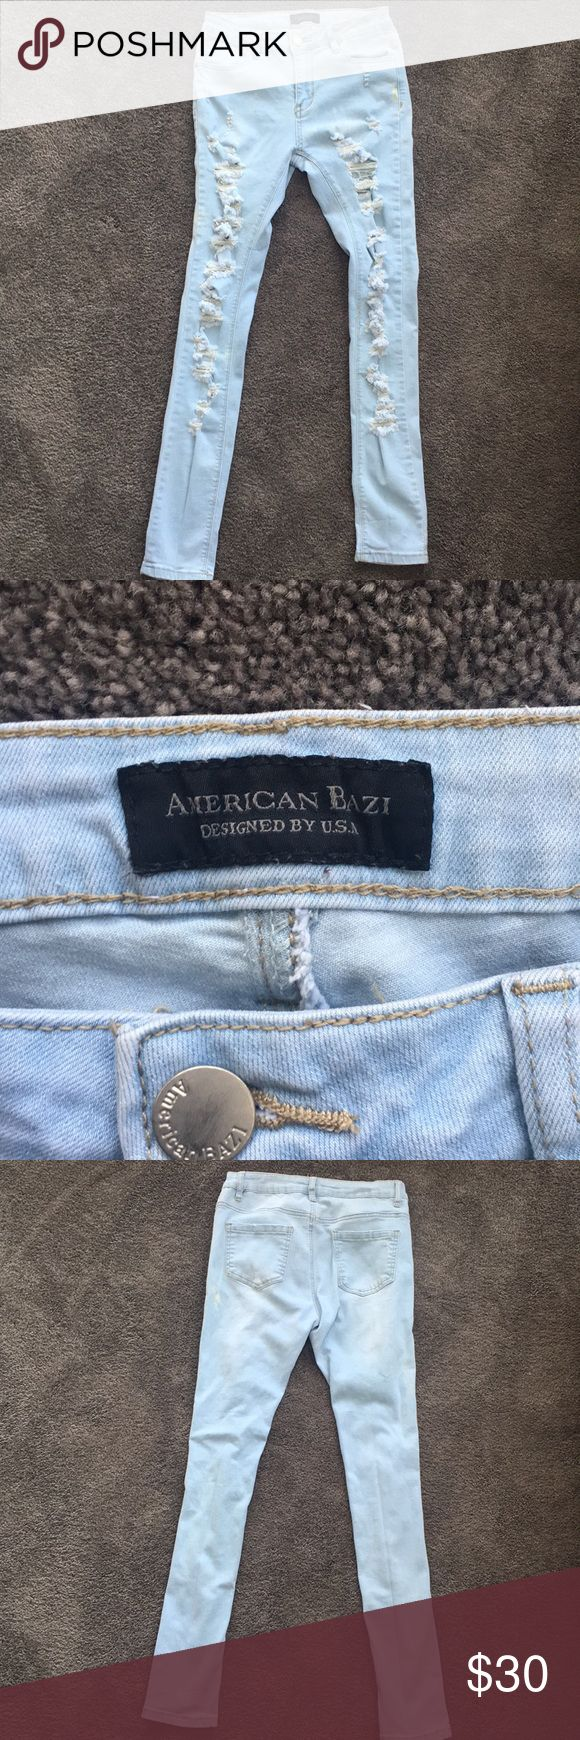 American Bazi light washed jeans NWOT American Bazi high wasted, light washed jeans with ripped all throughout the front of the jean. Never worn. Just too big on me. The tag says they are a 3. i'm a 2 and they fit like a 3/4. American Bazi Jeans Skinny